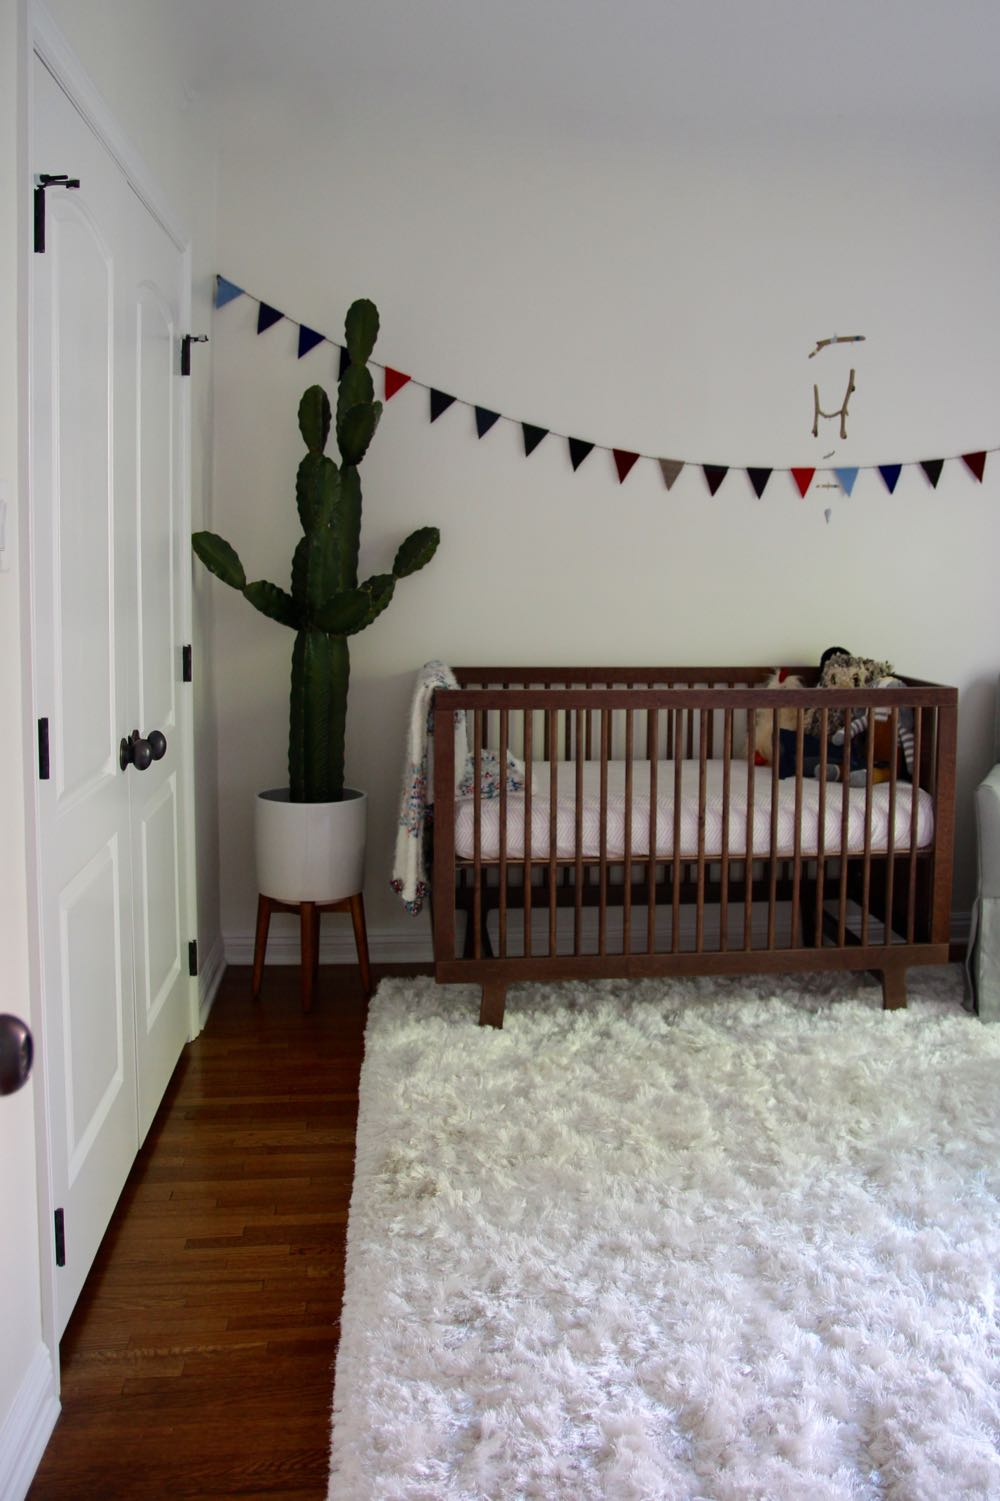 Clean and modern baby nursery with cactus and flags